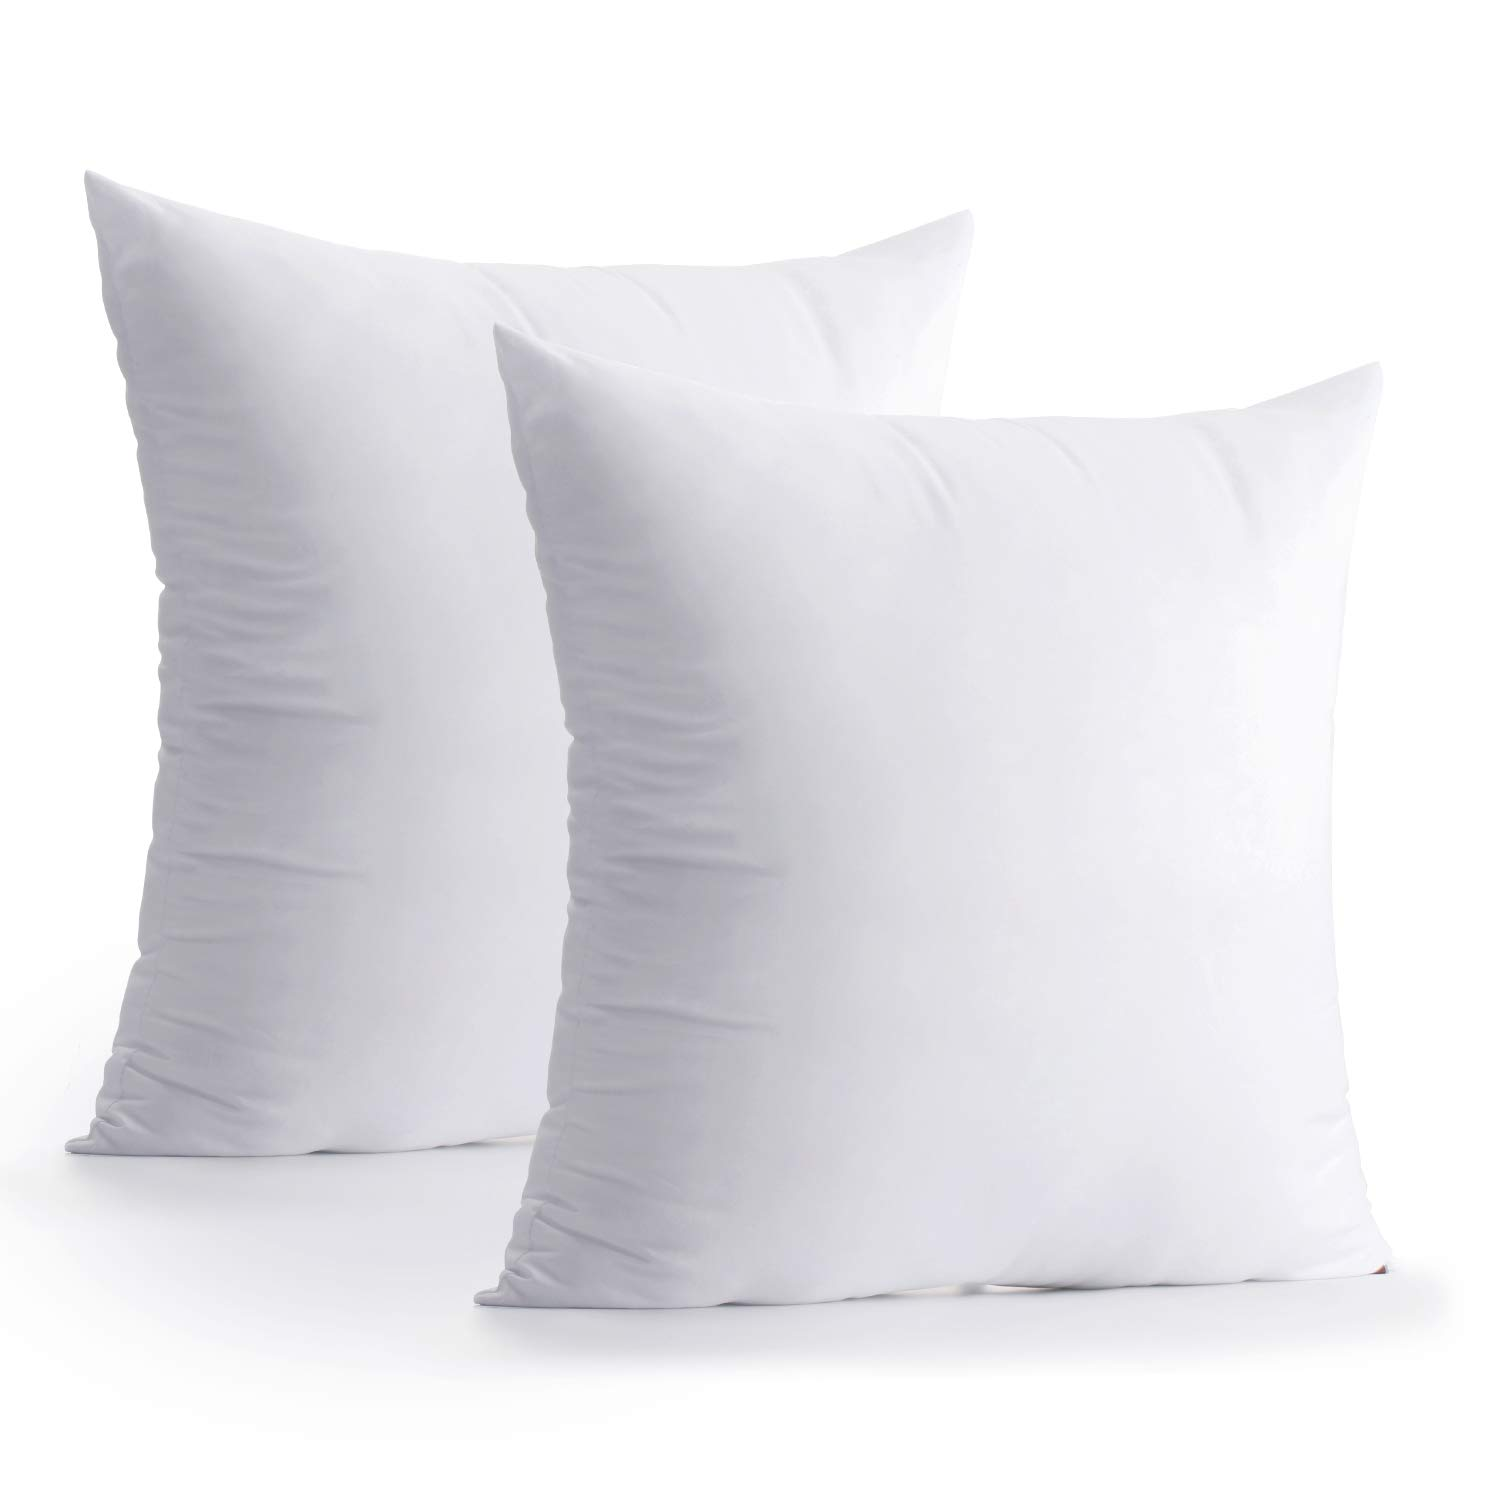 2 Packs Hypoallergenic Square Form Sham Decorative Cotton Pillows Cushion Stuffer 12 x 20 inches Calibrate Timing Throw Pillow Inserts